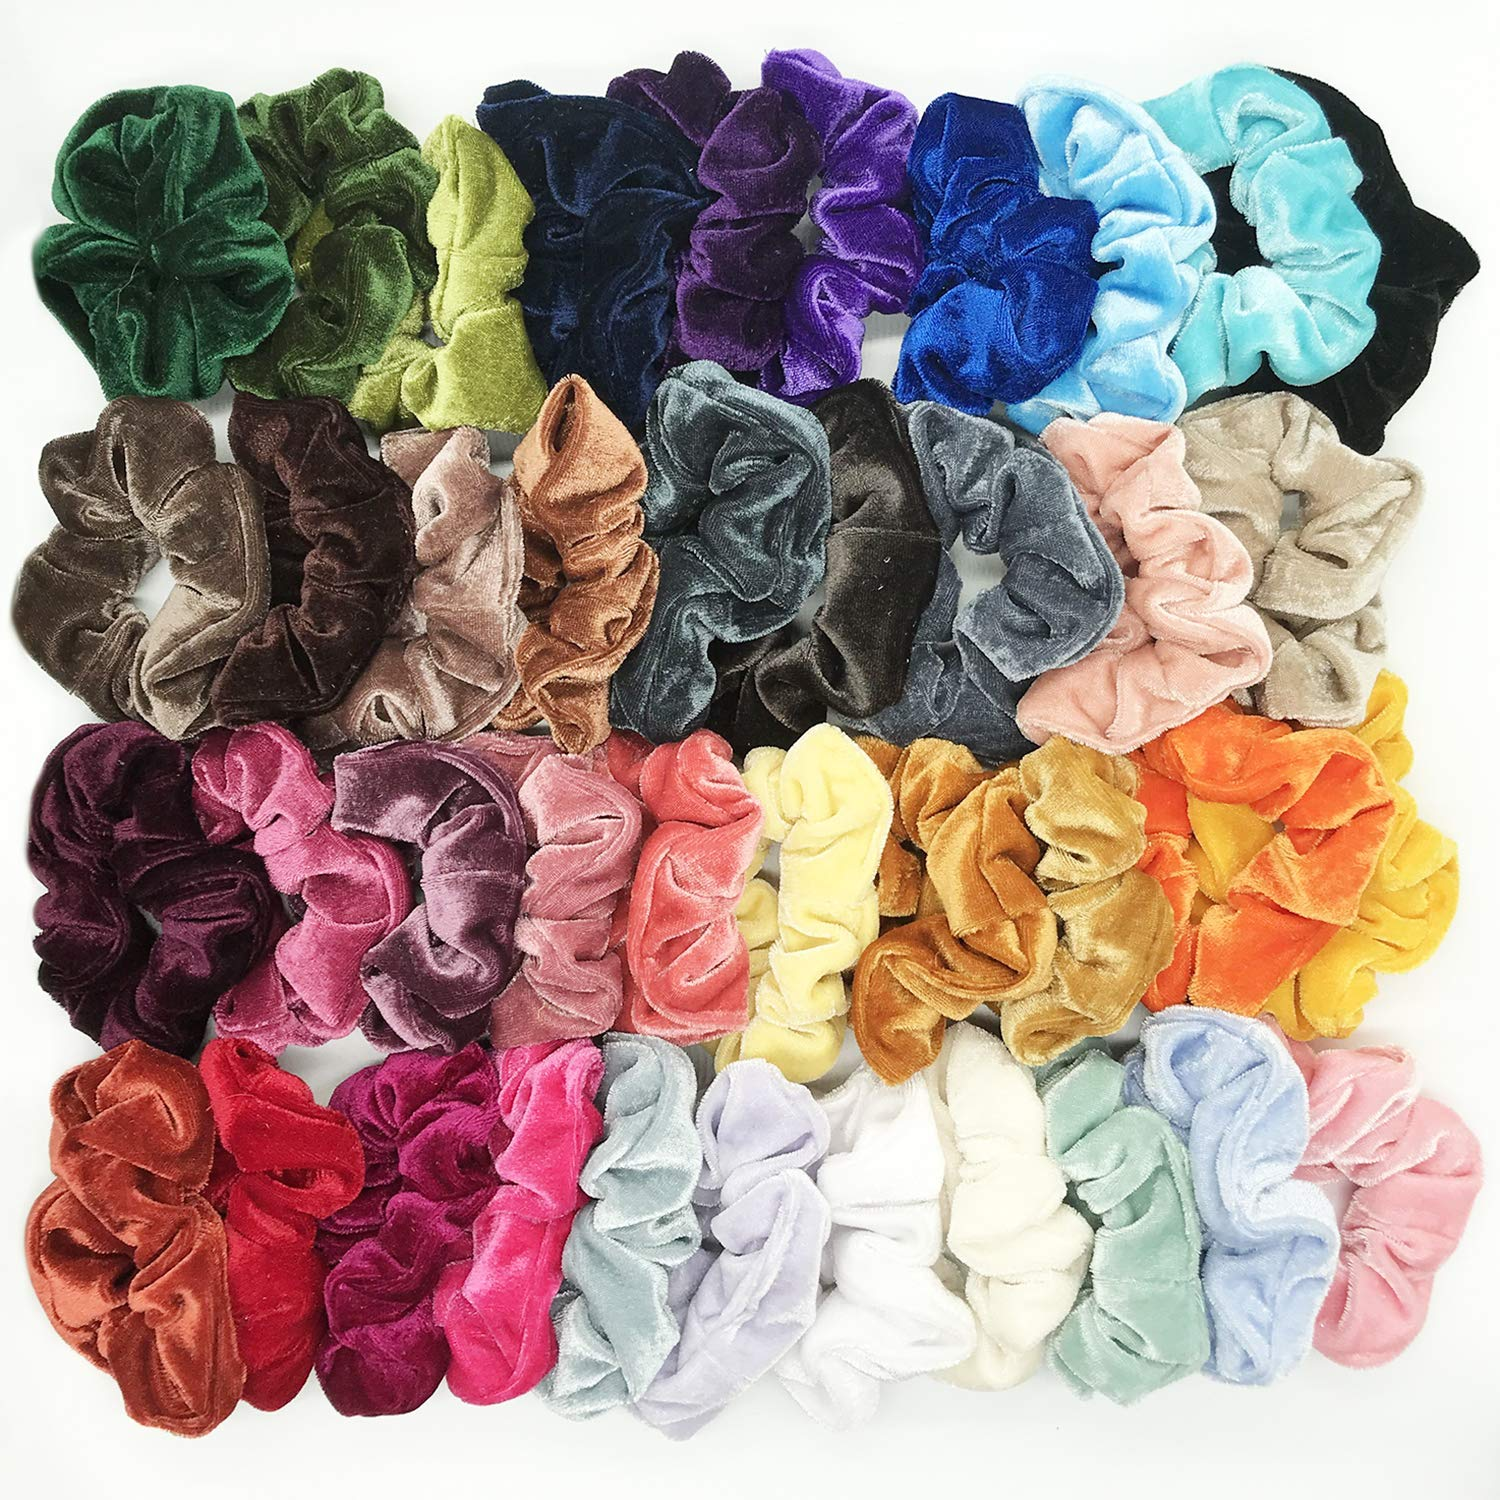 40 Pcs Hair Scrunchies Velvet Elastic Hair Bands Scrunchy Hair Ties Ropes Scrunchie for Women or Girls Hair Accessories - 40 Assorted Colors by UYICOO